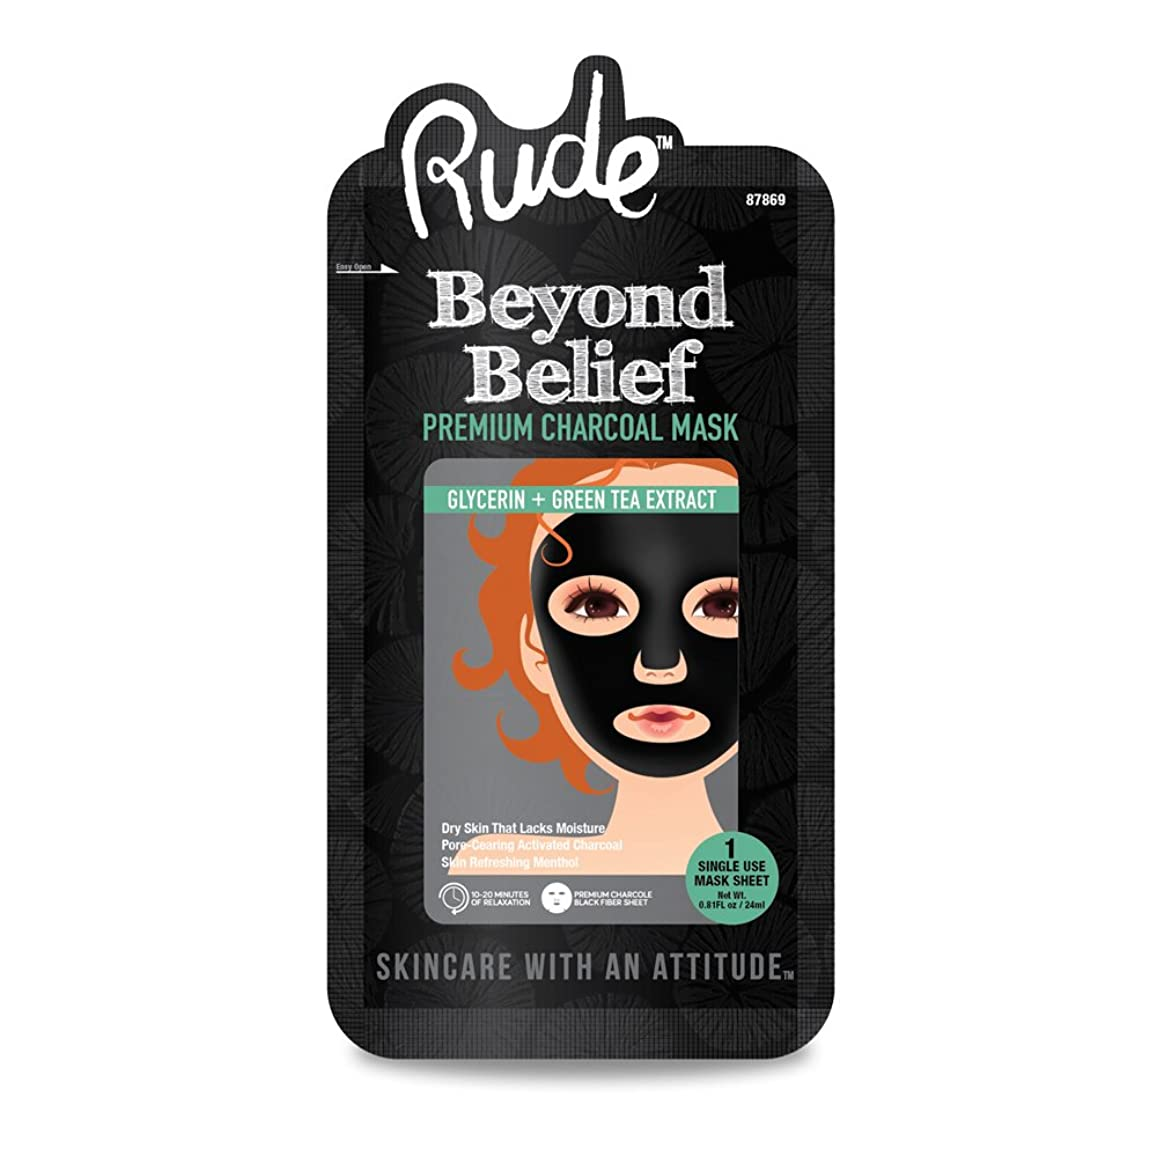 発行する植物のほこり(6 Pack) RUDE Beyond Belief Purifying Charcoal Face Mask (並行輸入品)